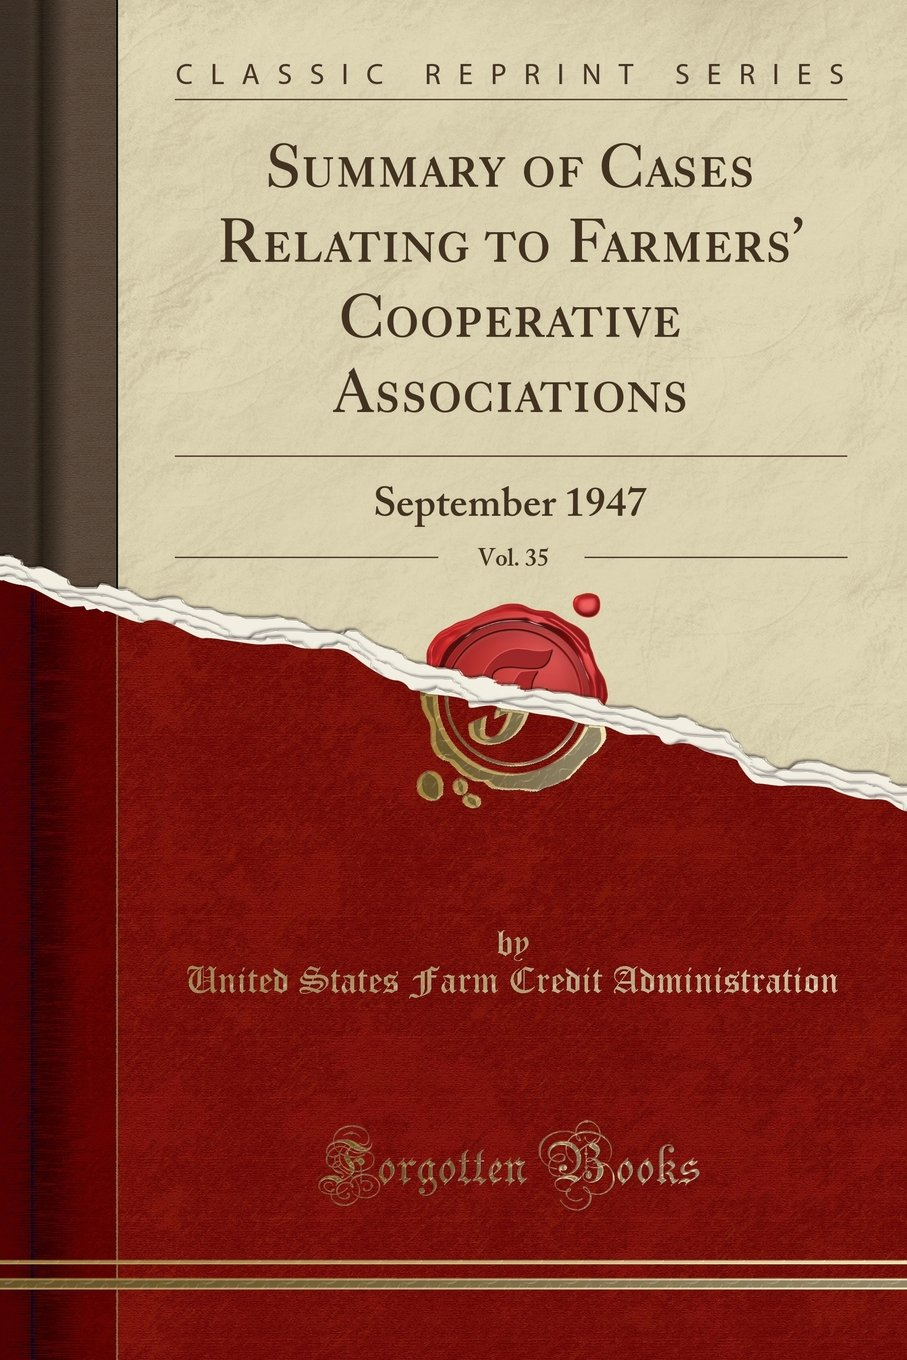 Summary of Cases Relating to Farmers' Cooperative Associations, Vol. 35: September 1947 (Classic Reprint) pdf